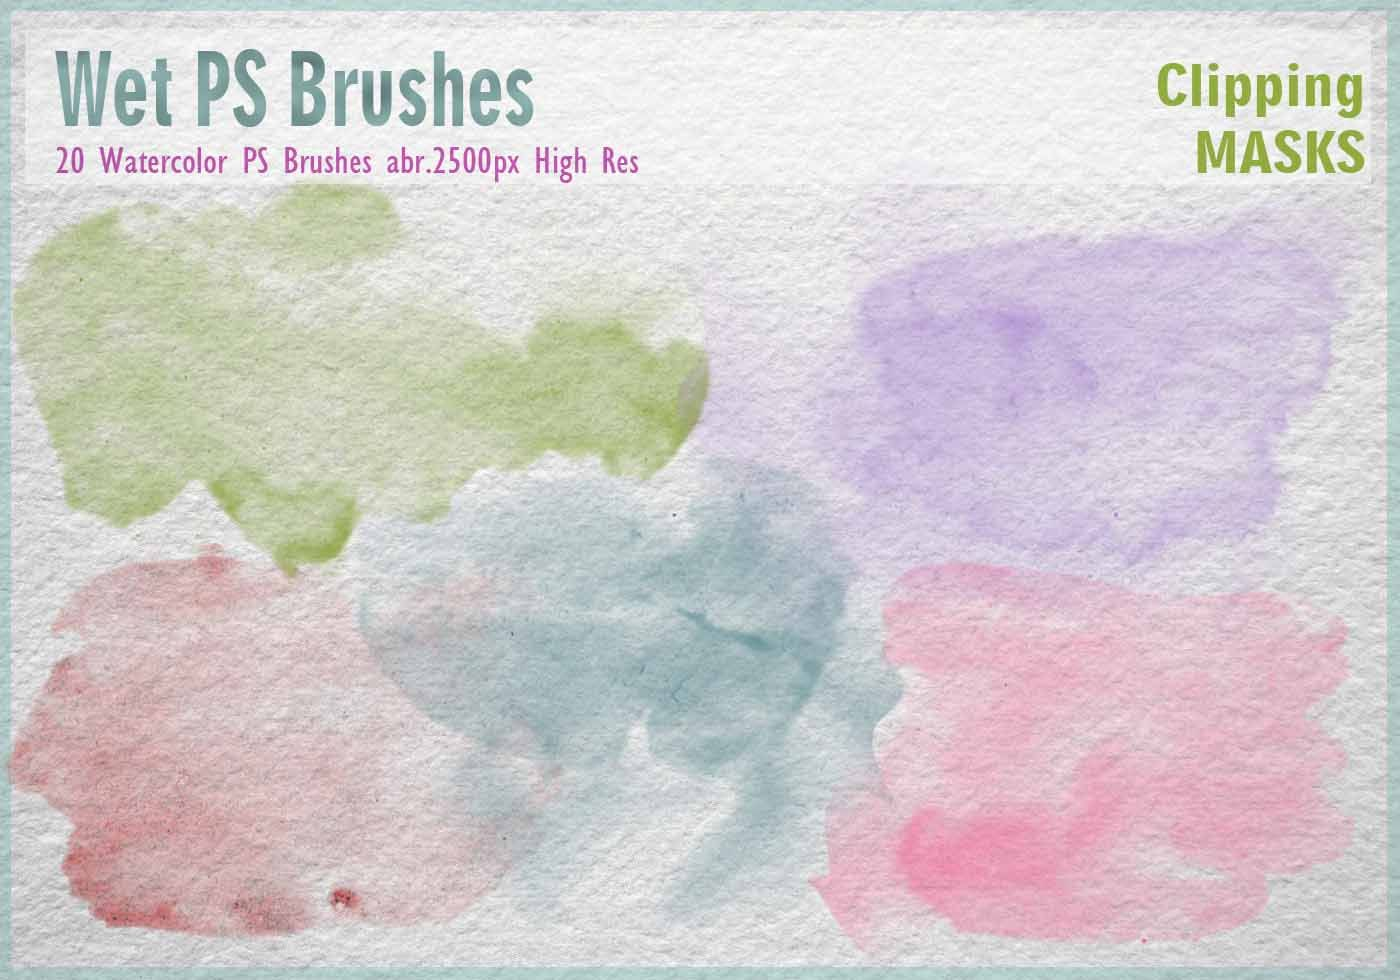 20 Watercolor Mask Ps Brushes Abr 2500px High Res Wet Grunge